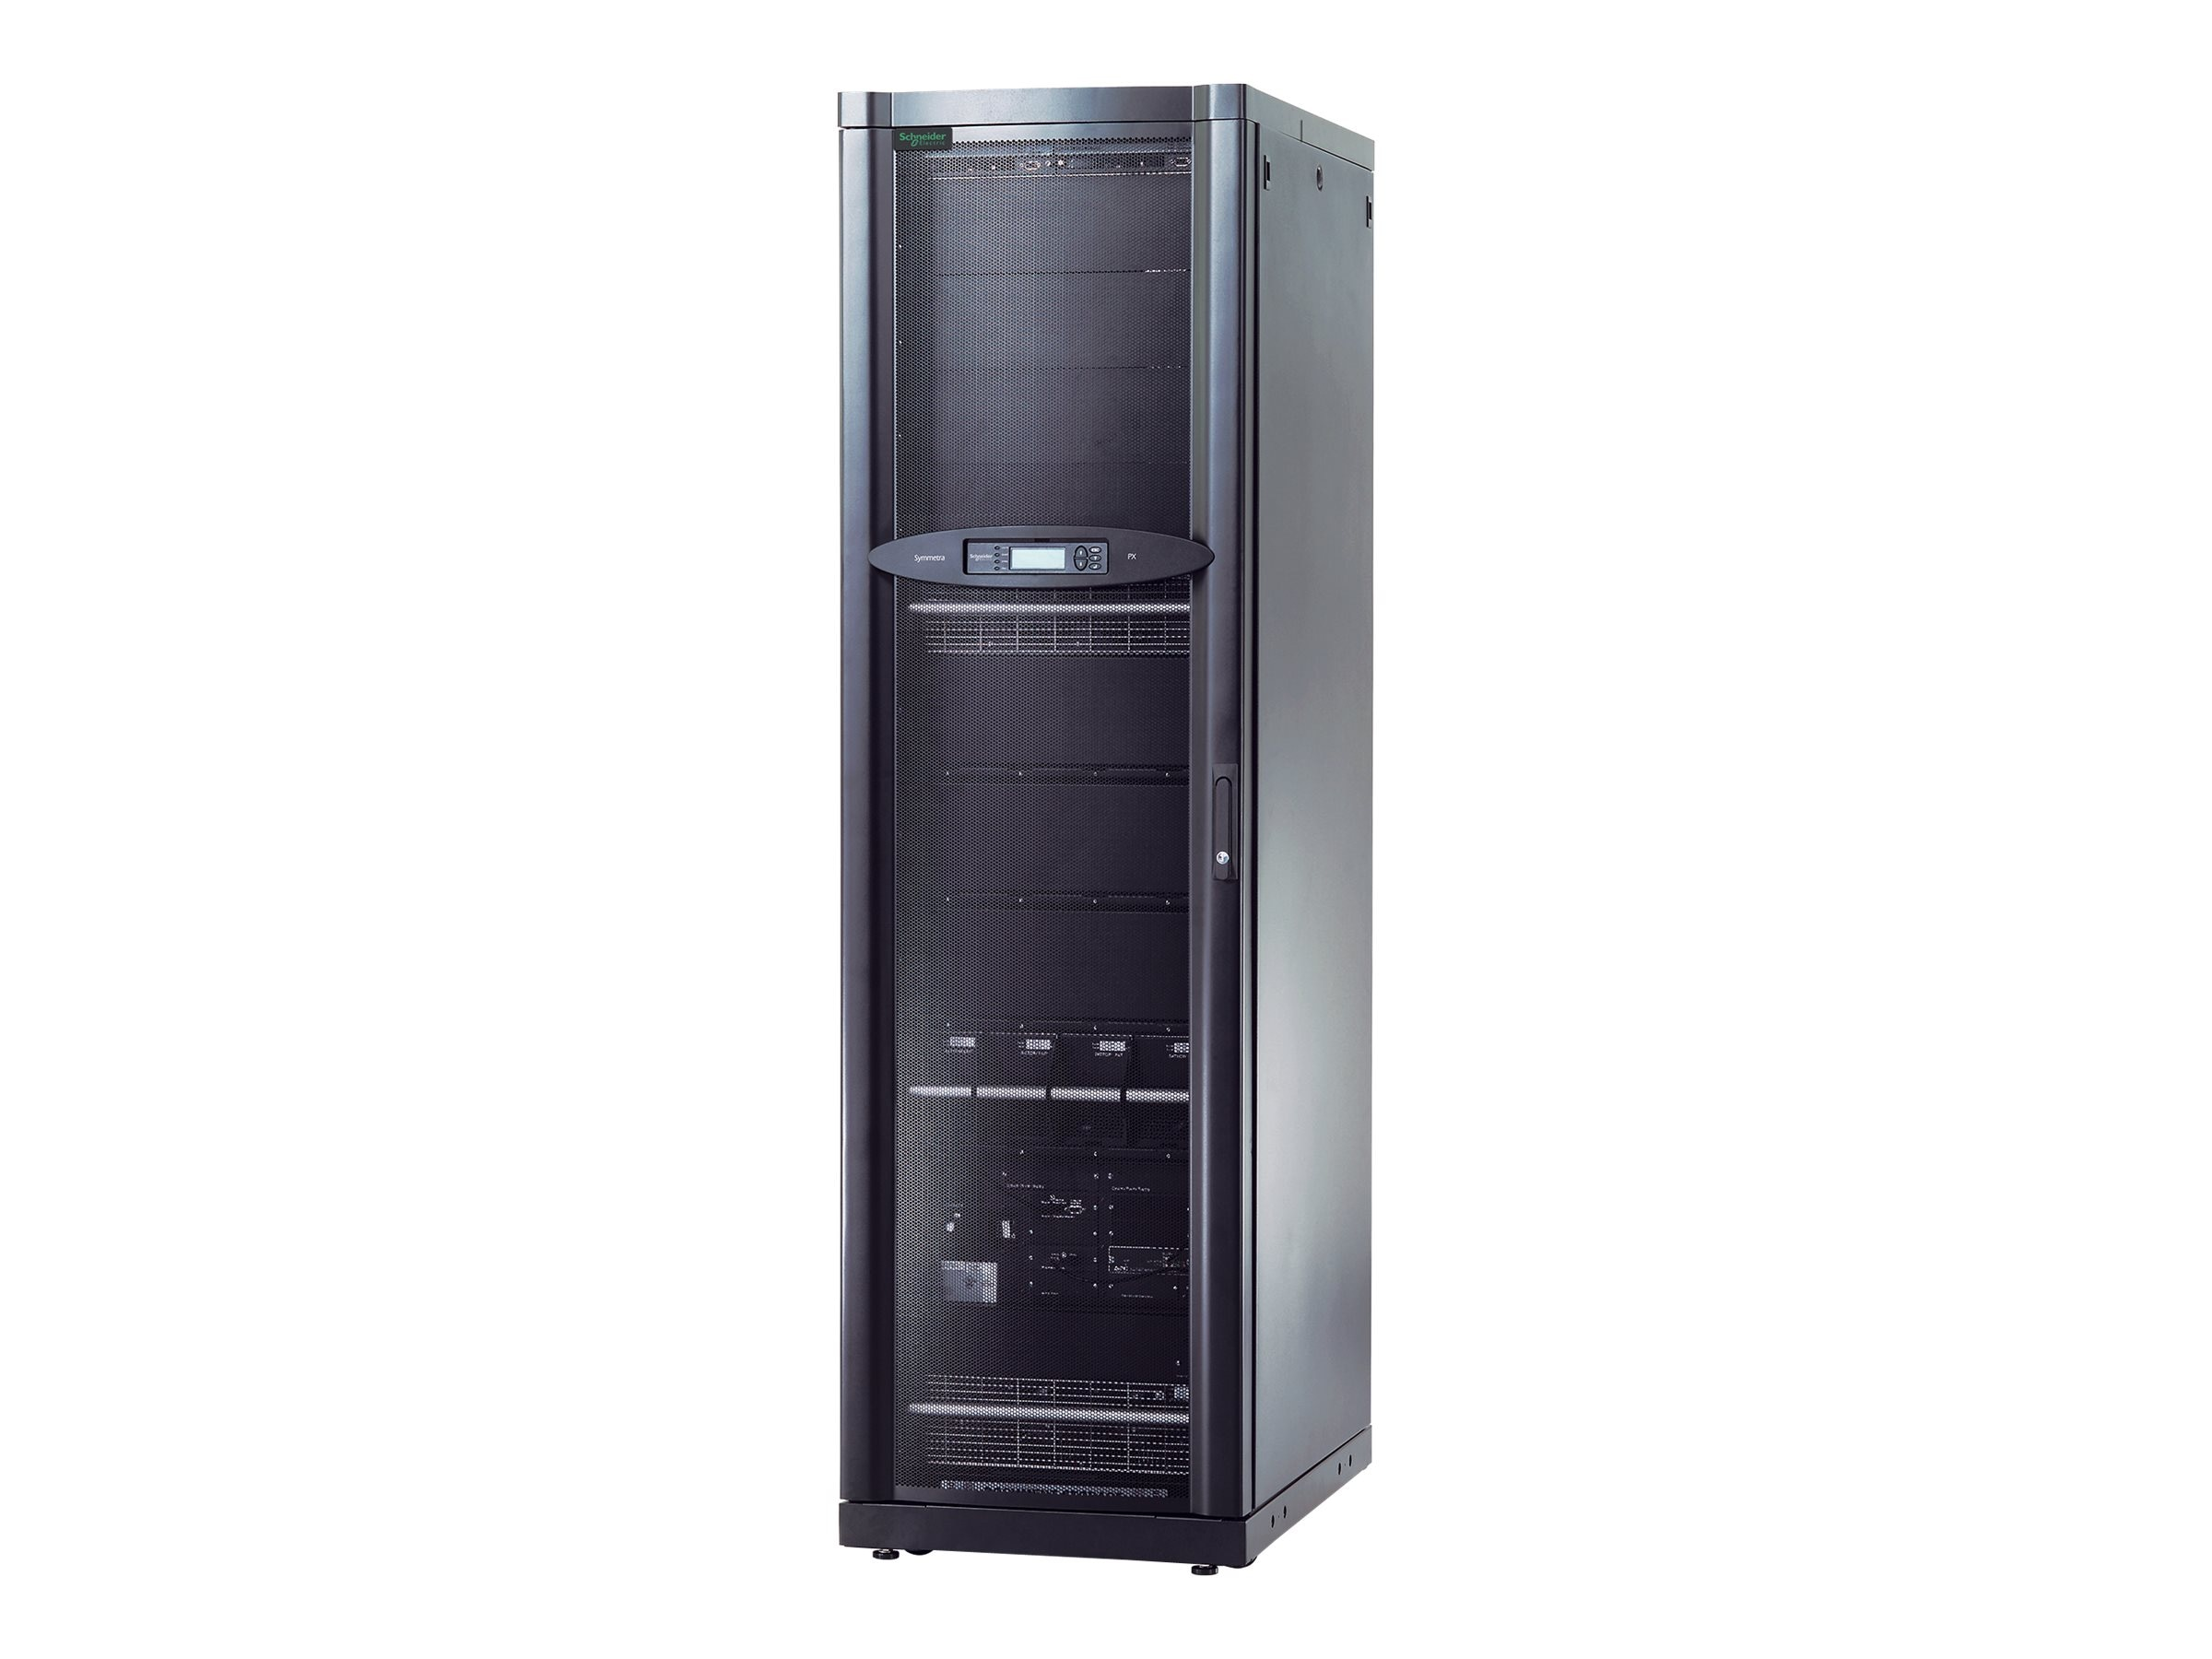 APC Symmetra PX 10kVA 10kW Scalable to 40kW N+1, 208V, SY10K40F, 419483, Battery Backup/UPS